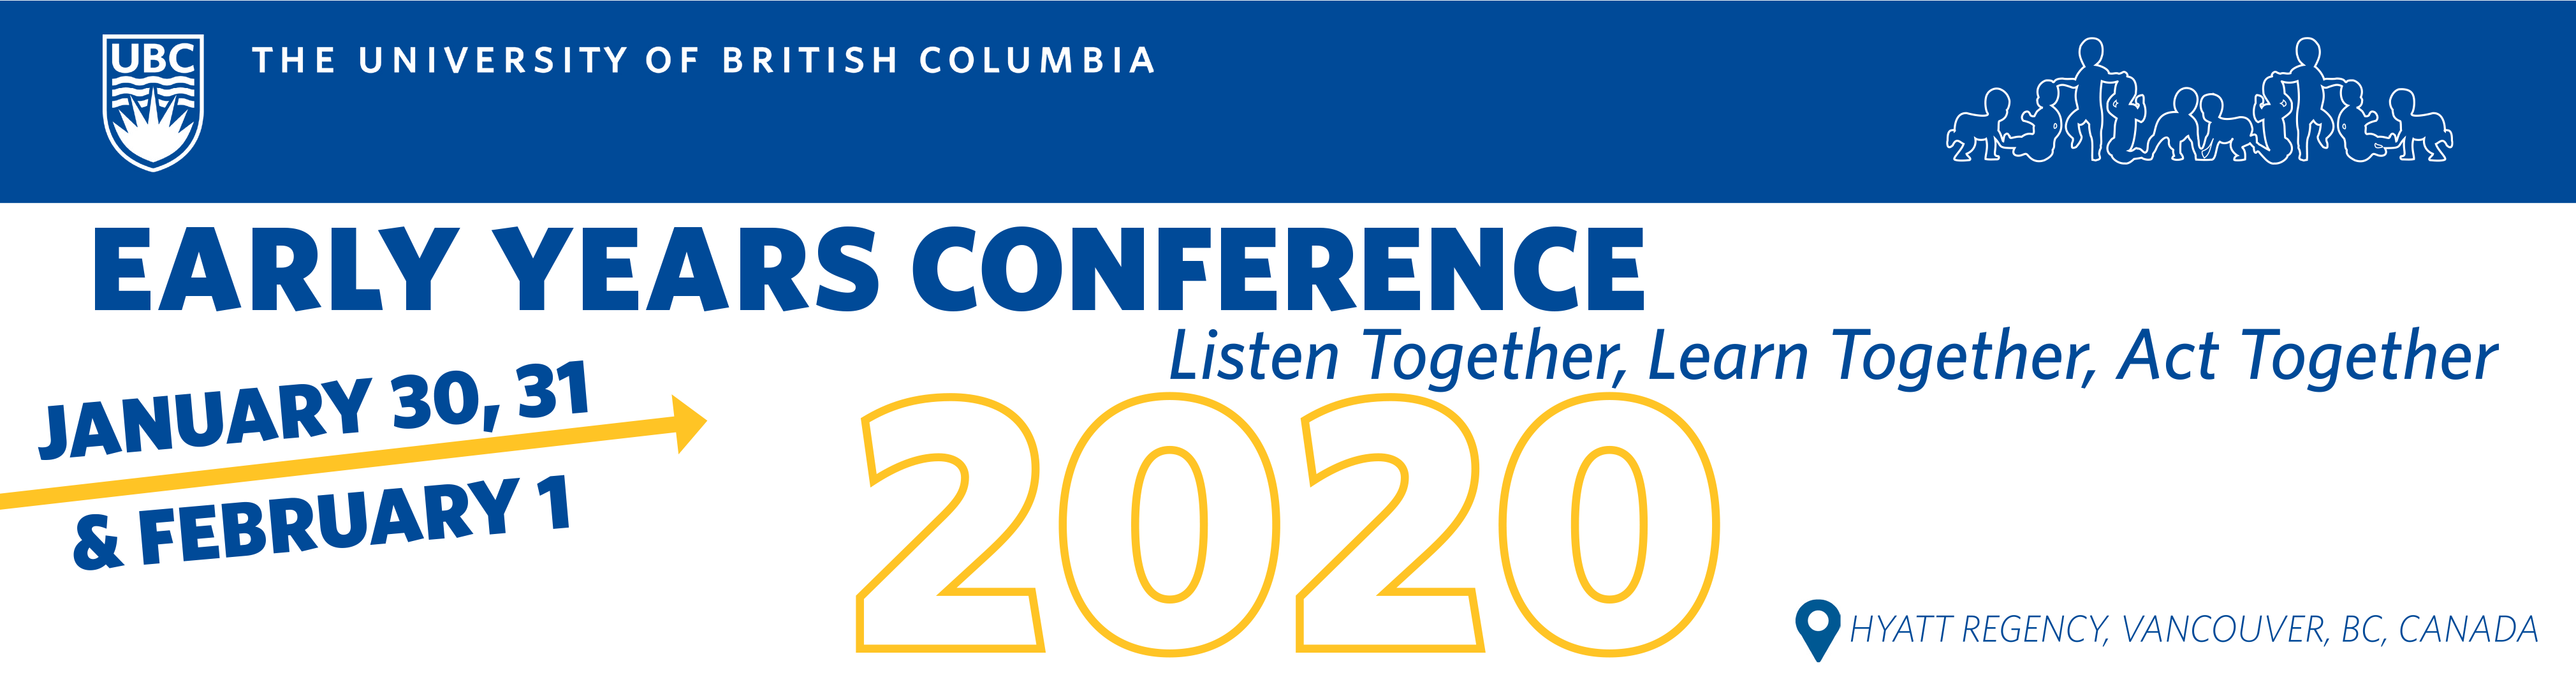 Early Years Conference: January 30, 31, & February 1, 2020